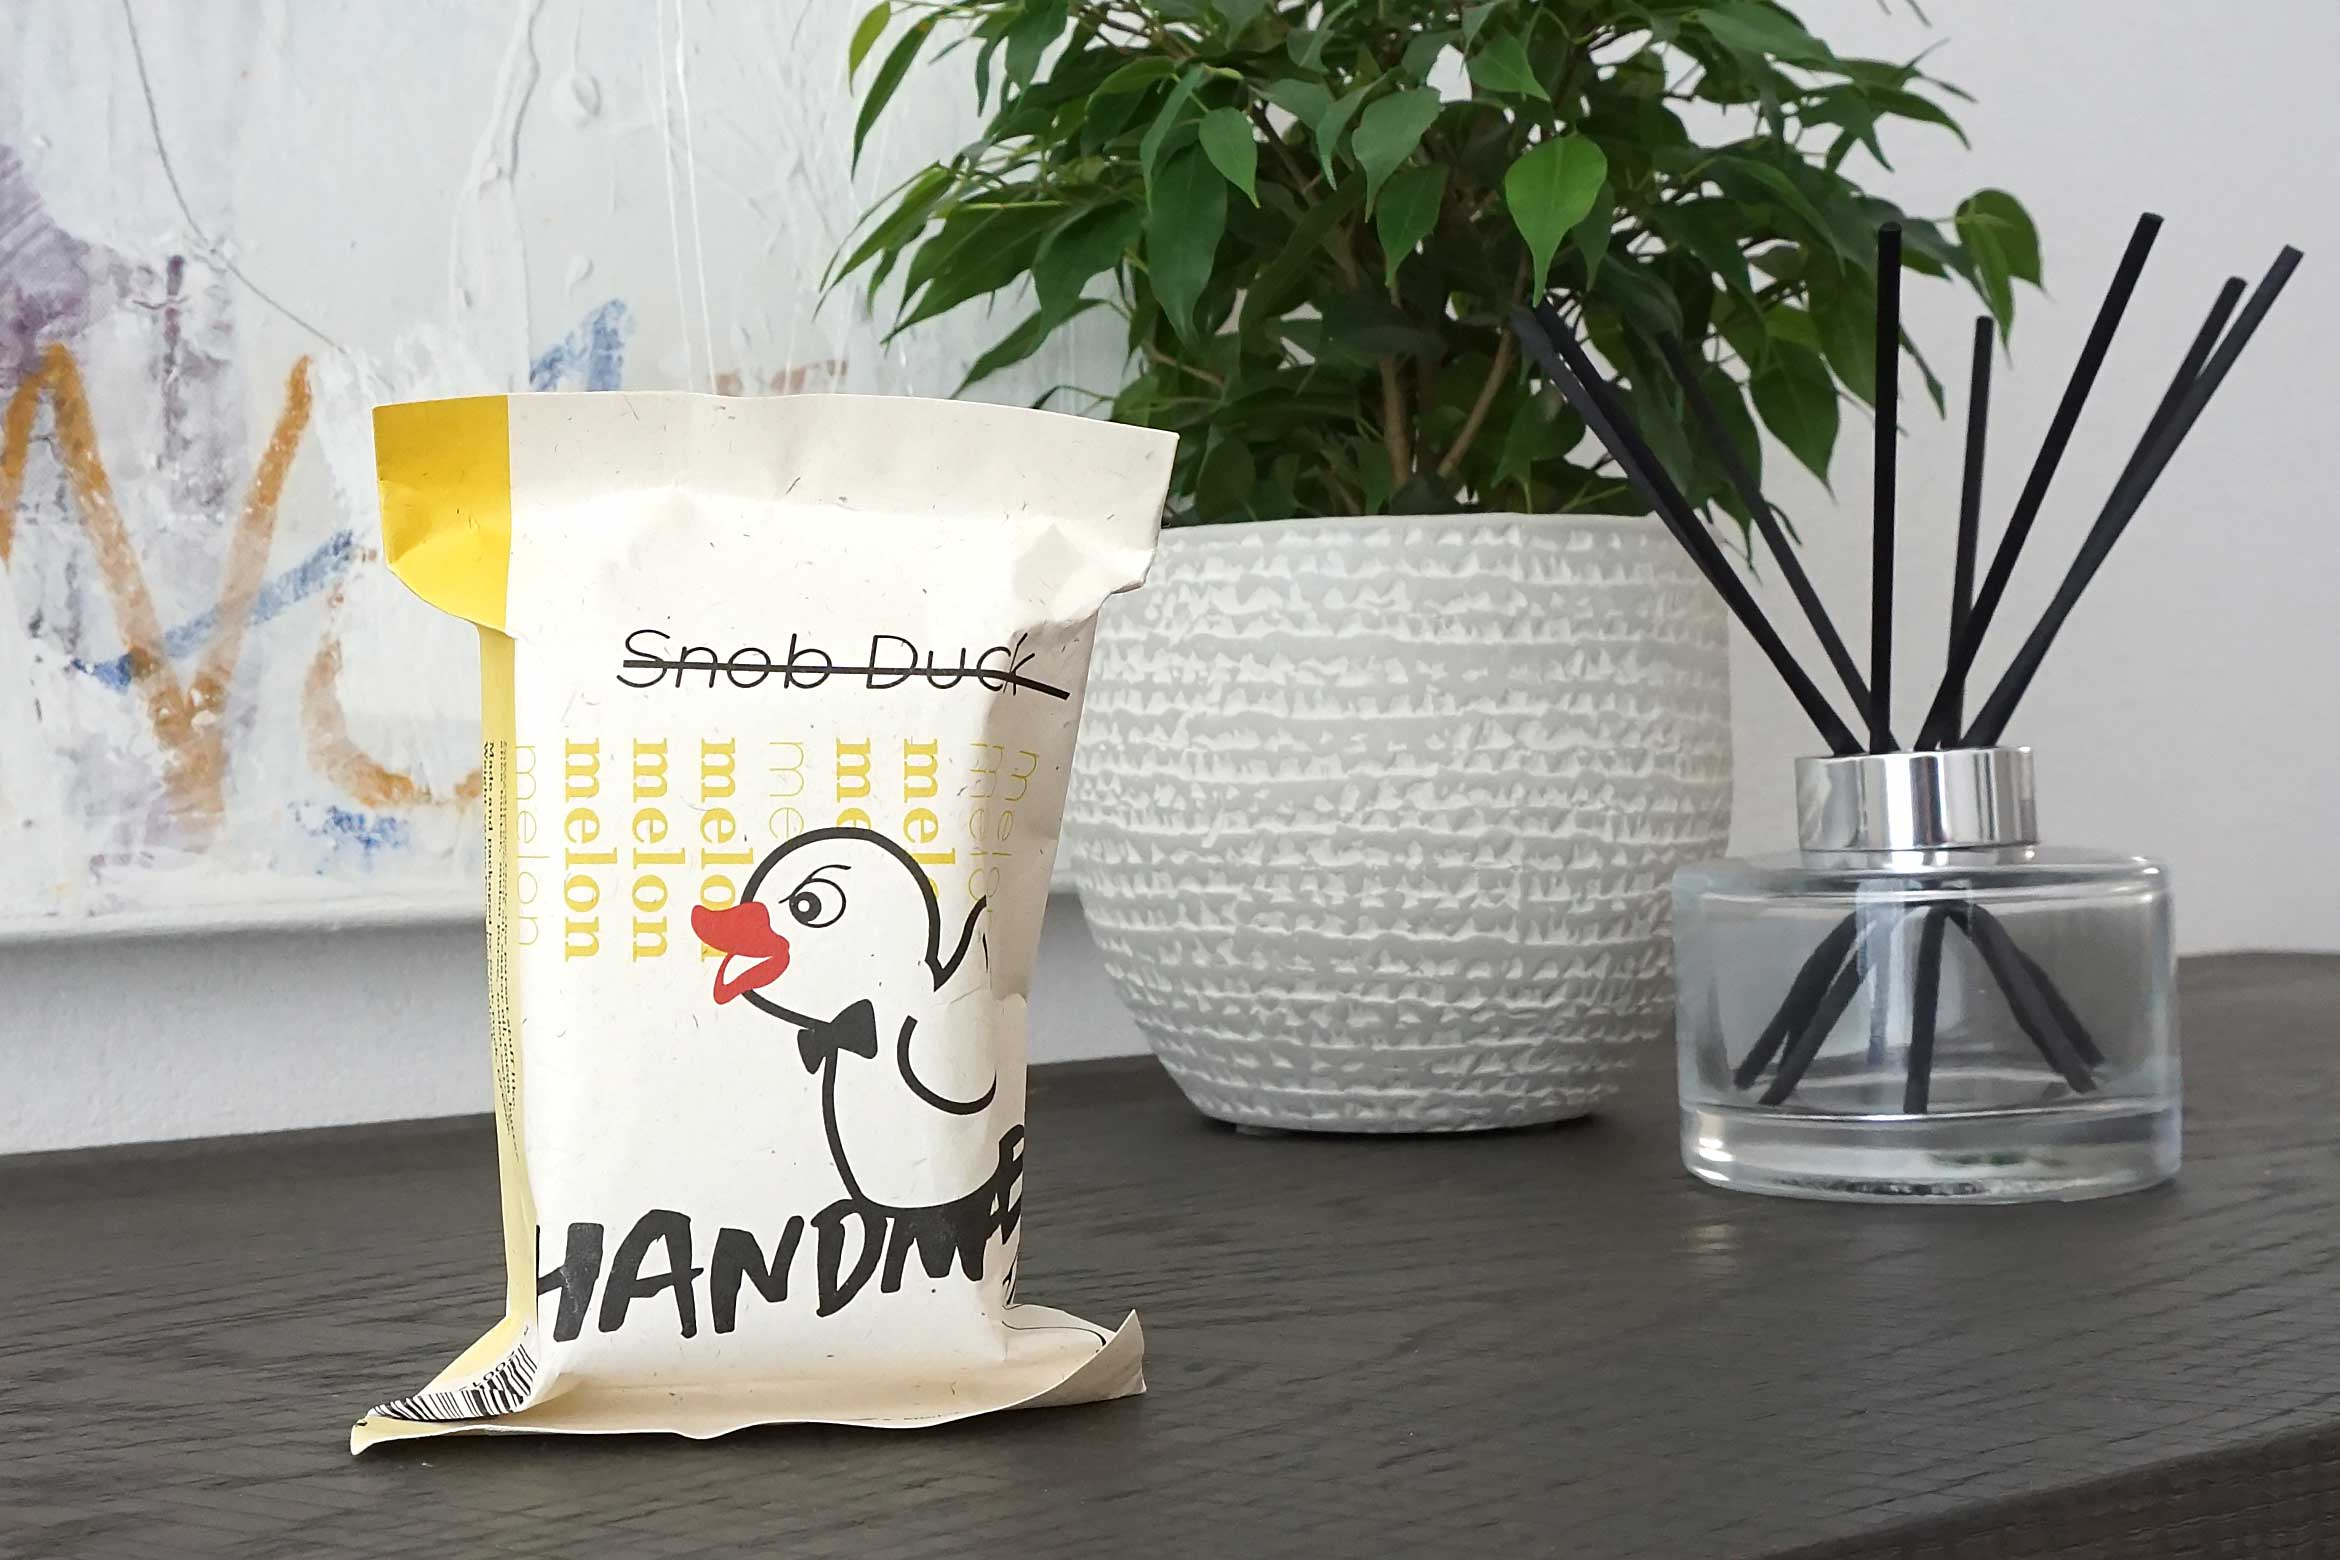 snob duck soap review